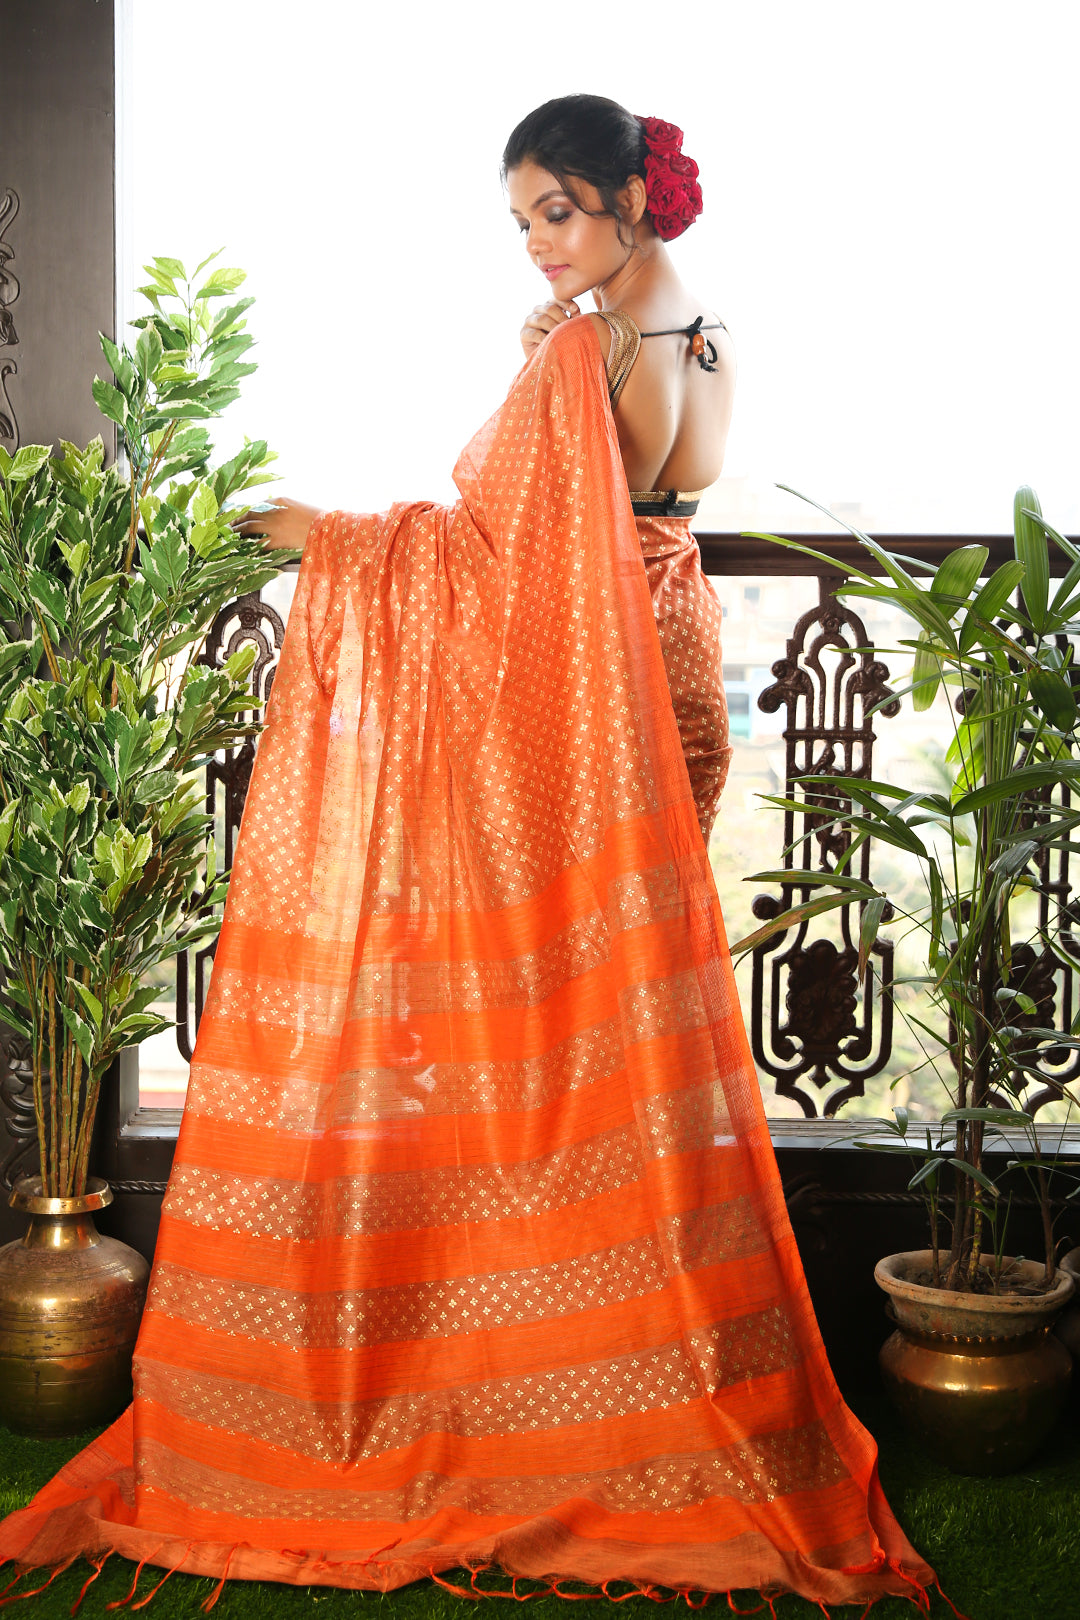 ORANGE BLENDED MATKA SAREE WITH ALLOVER GOLDEN PRINTED BUTA